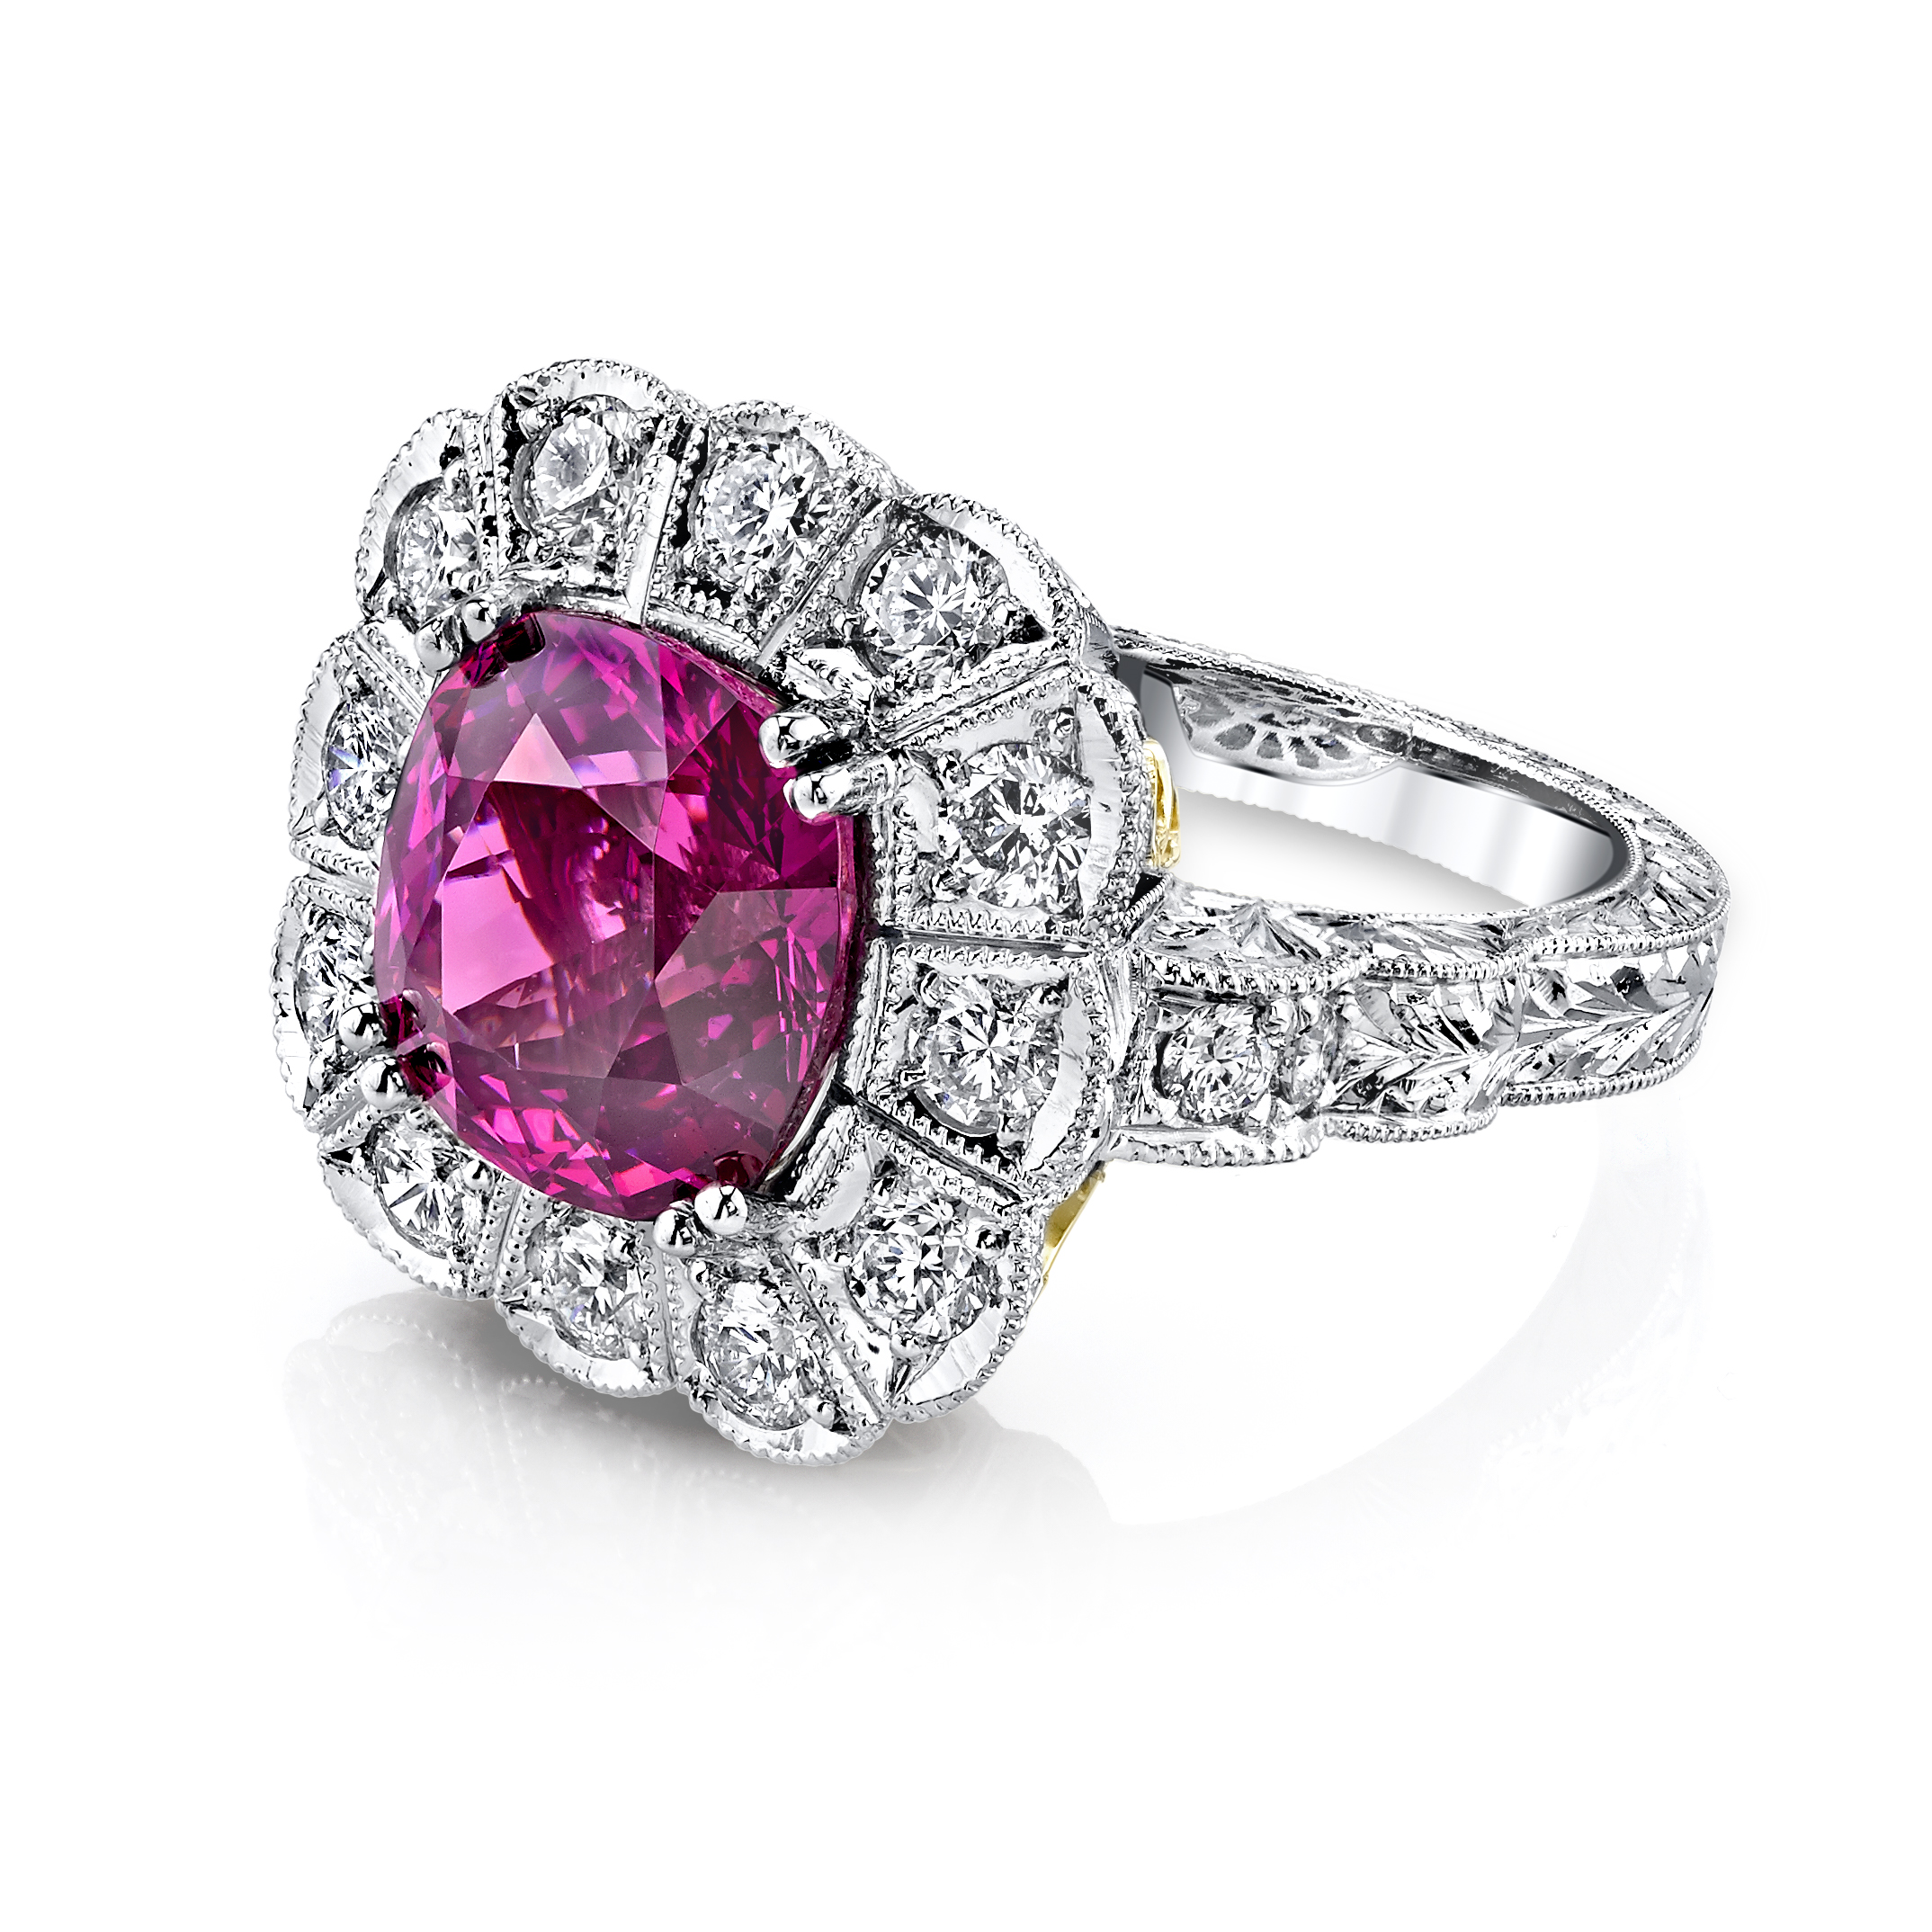 in diamond white with gold ring tw diamonds garnet rhodolite